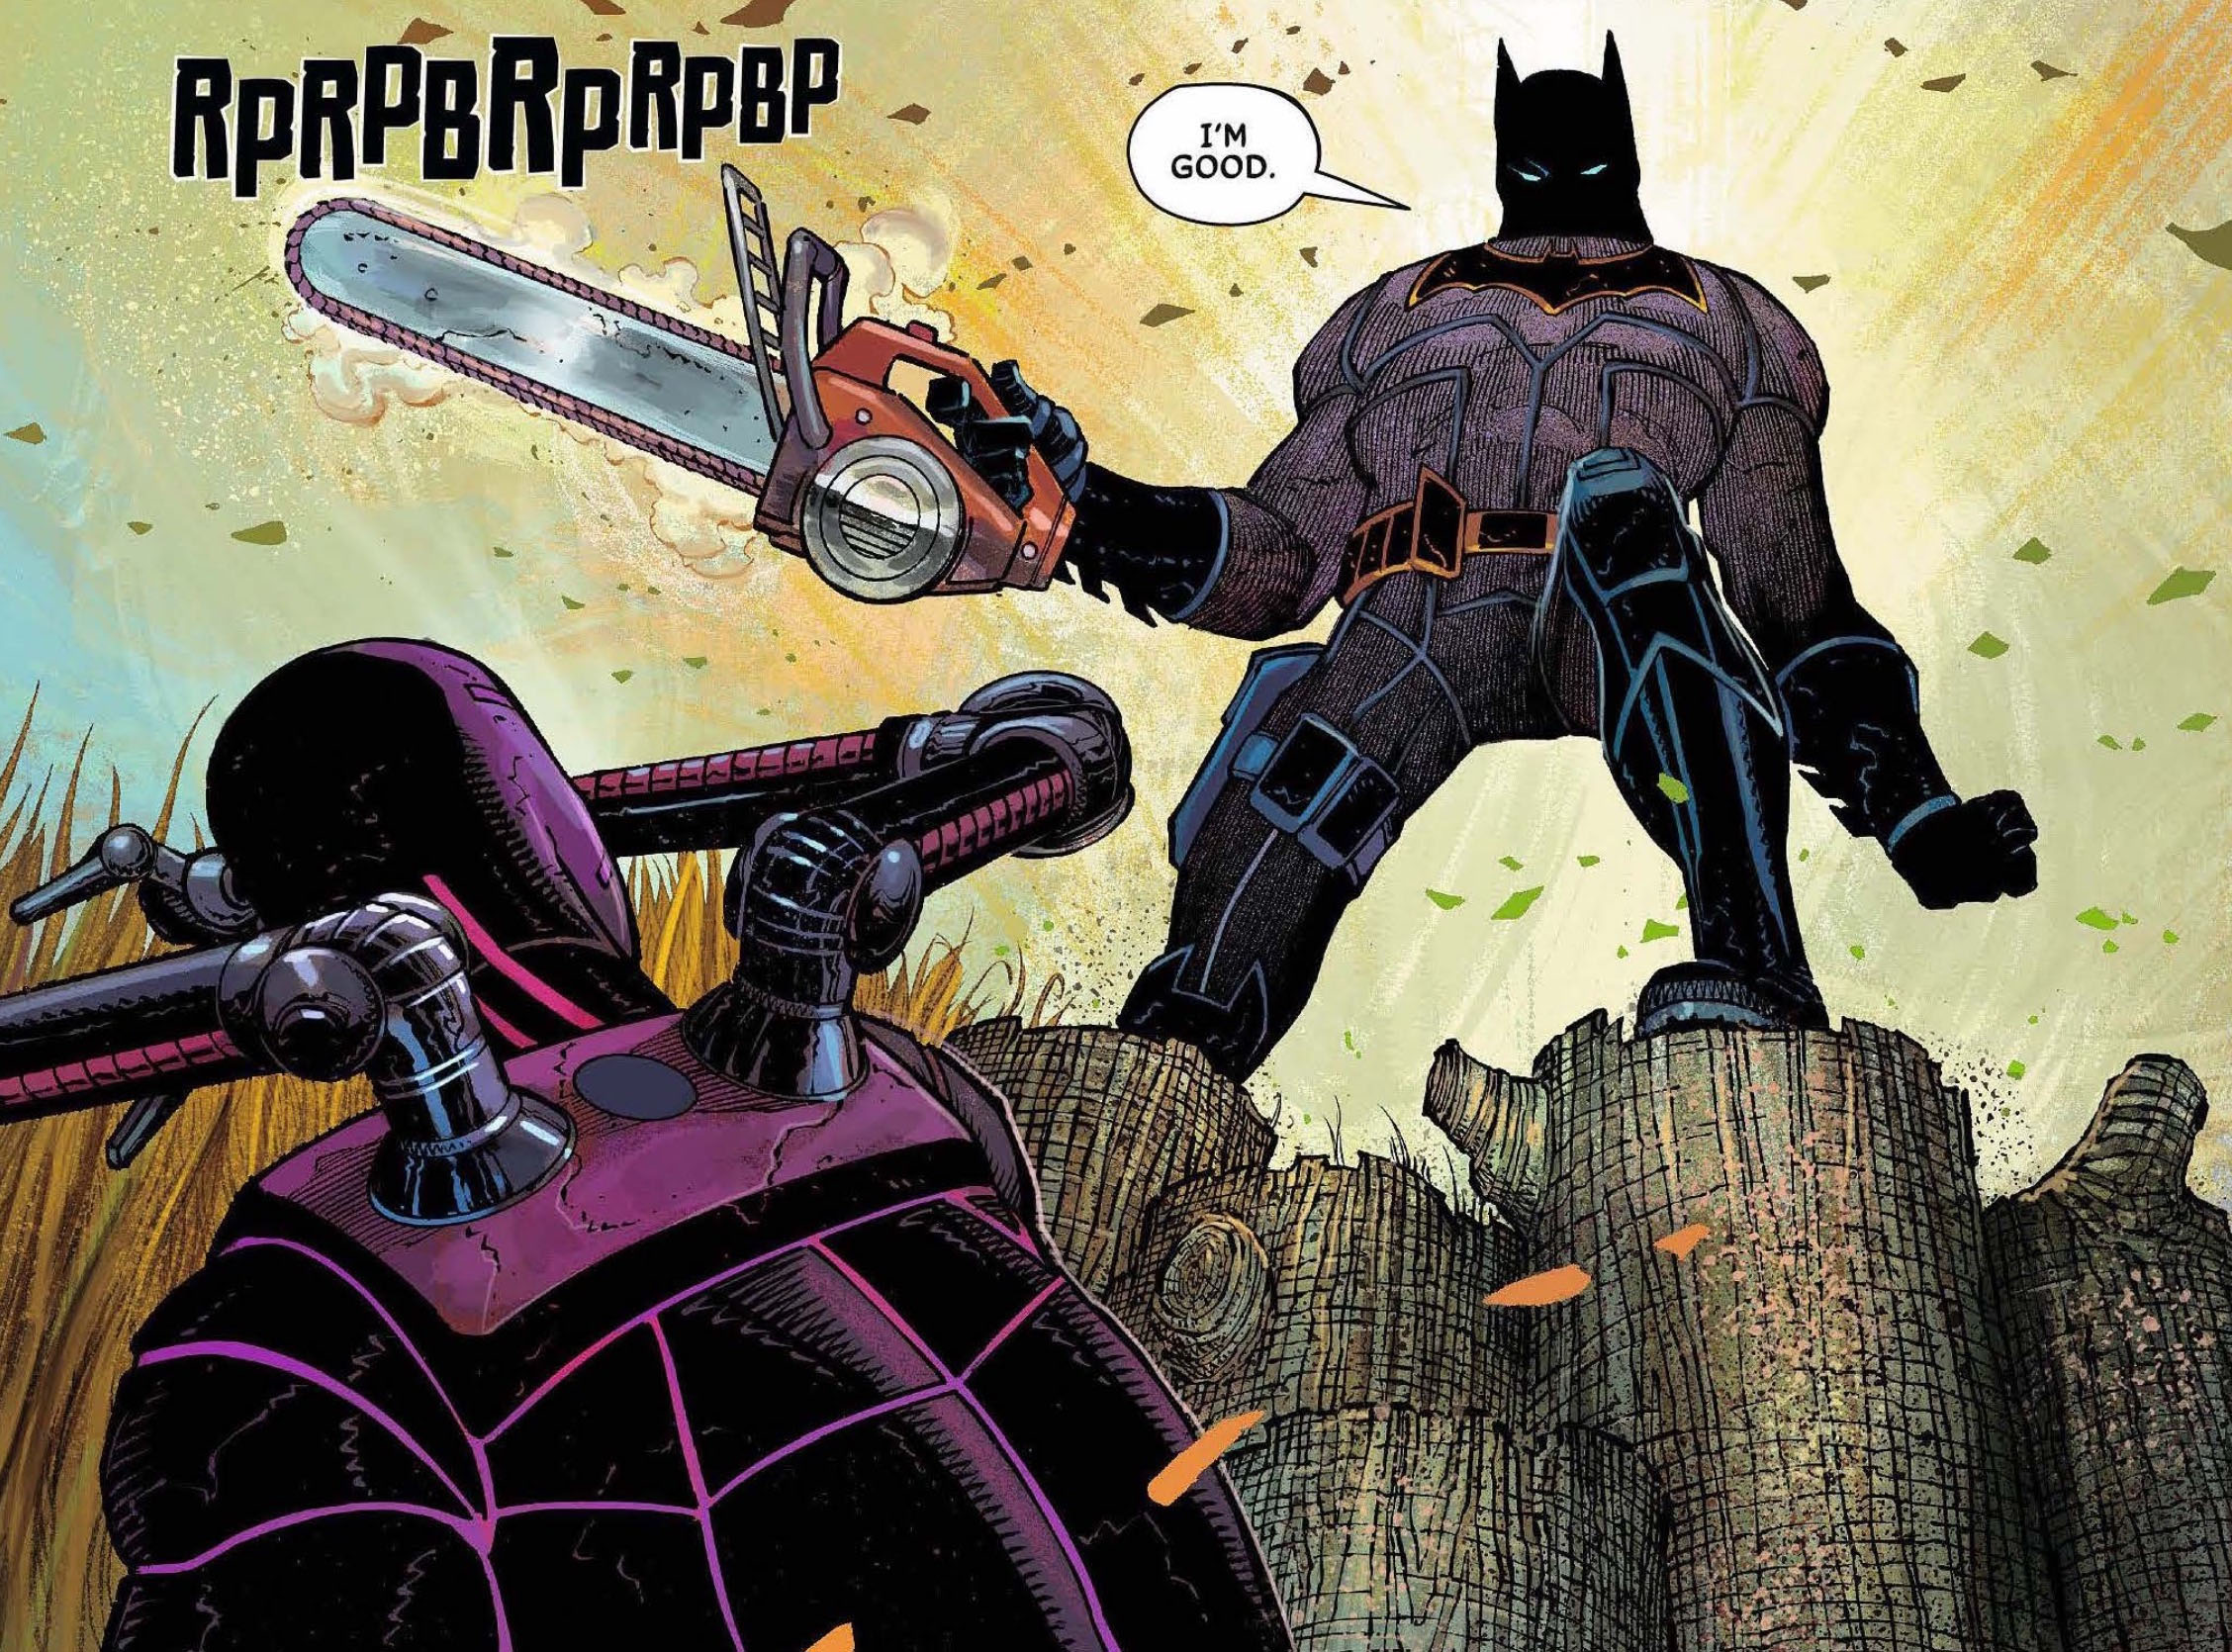 All-Star Batman Vol. 1: My Own Worst Enemy Review